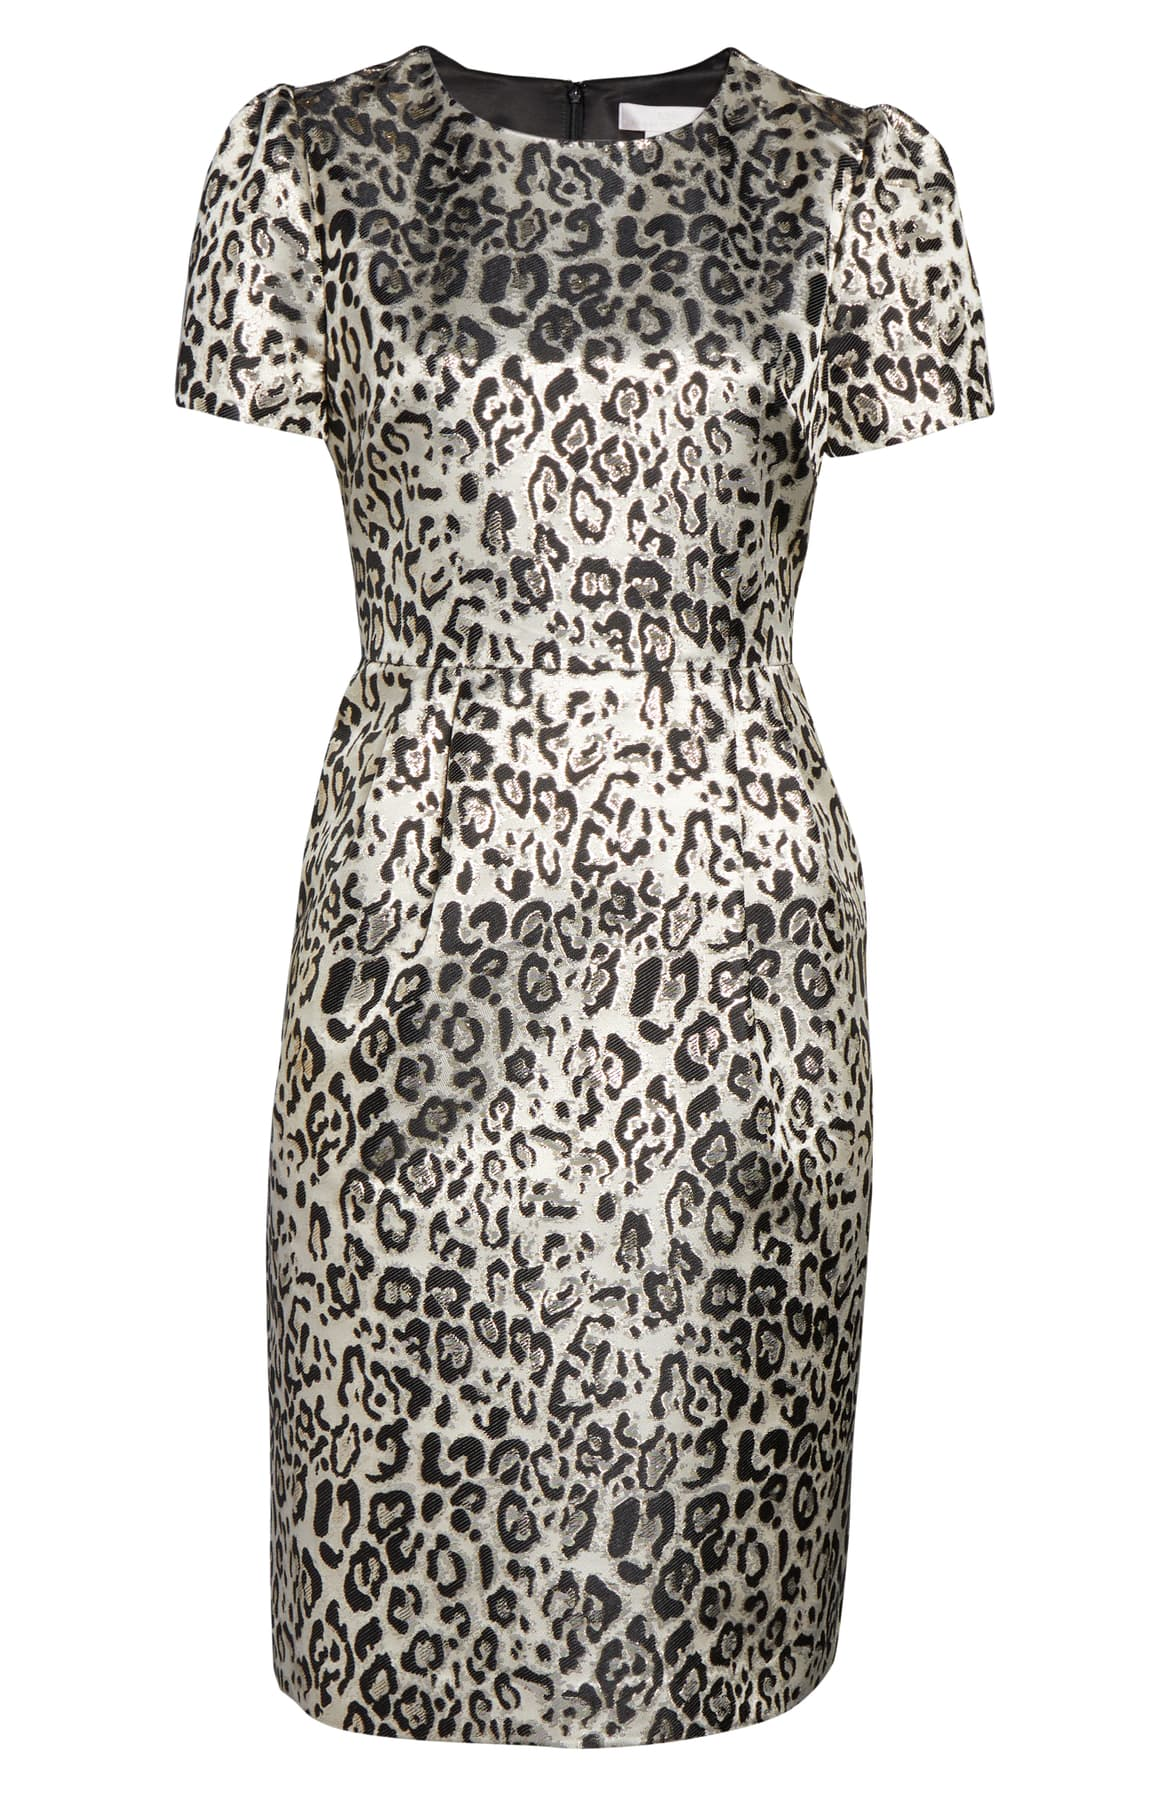 Enliven your 9-to-5 day in this leopard-print frock highlighted with metallic glimmer that will take you all the way to 11 o'clock (at least). $139 -{ }Shop the Look{ }(Image: Nordstrom){ }